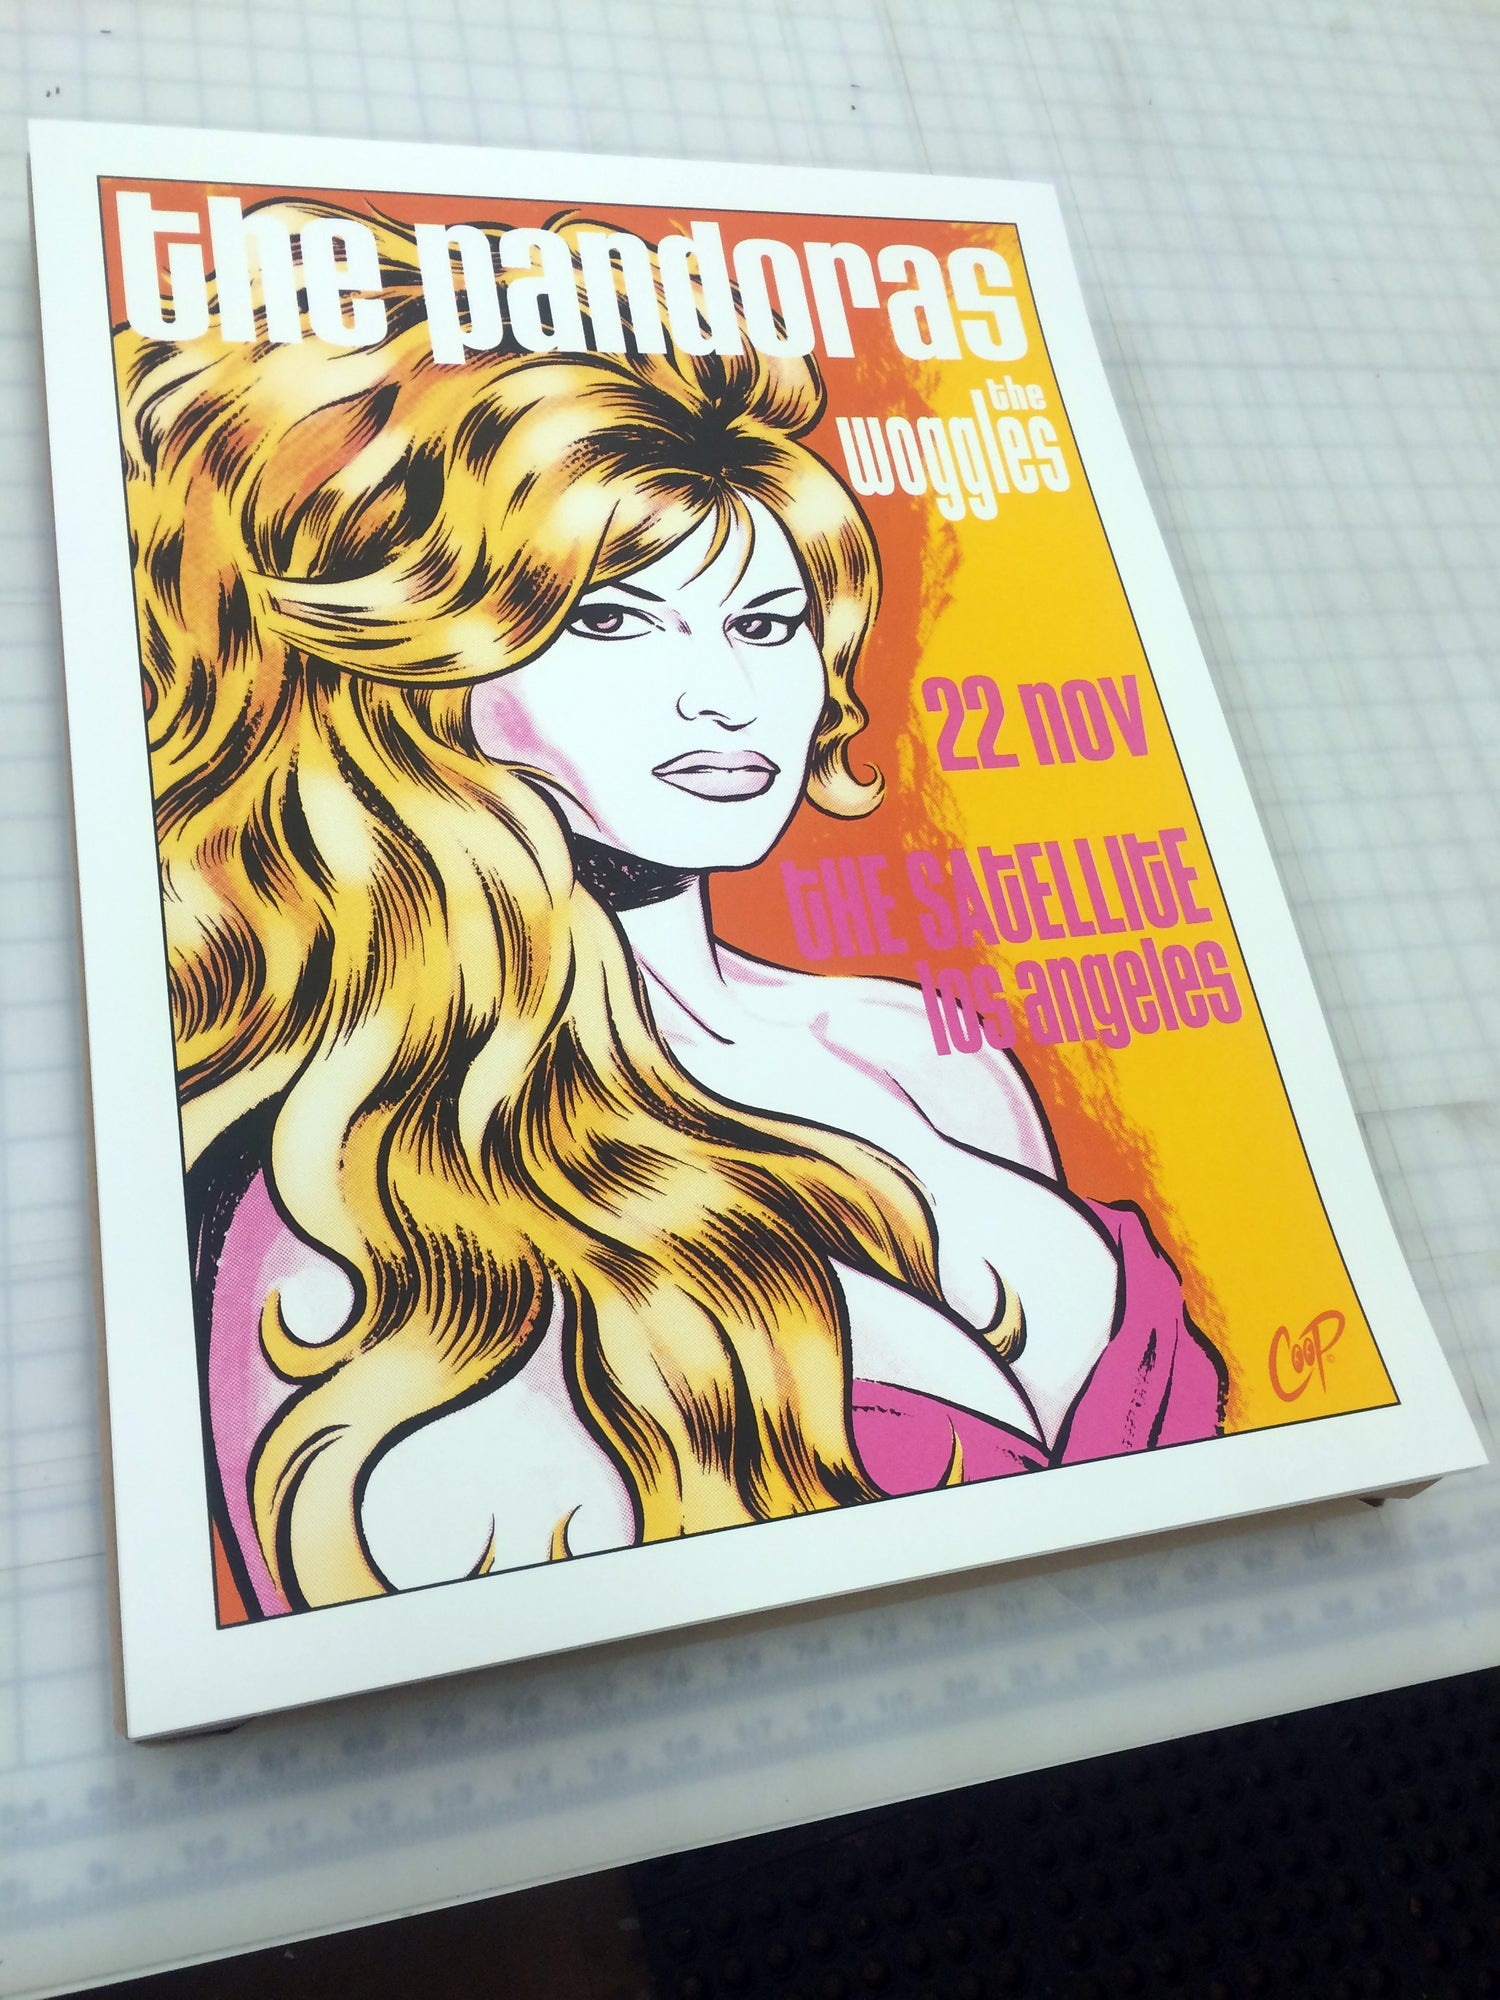 Image of PANDORAS/WOGGLES at the Satellite - silkscreen print